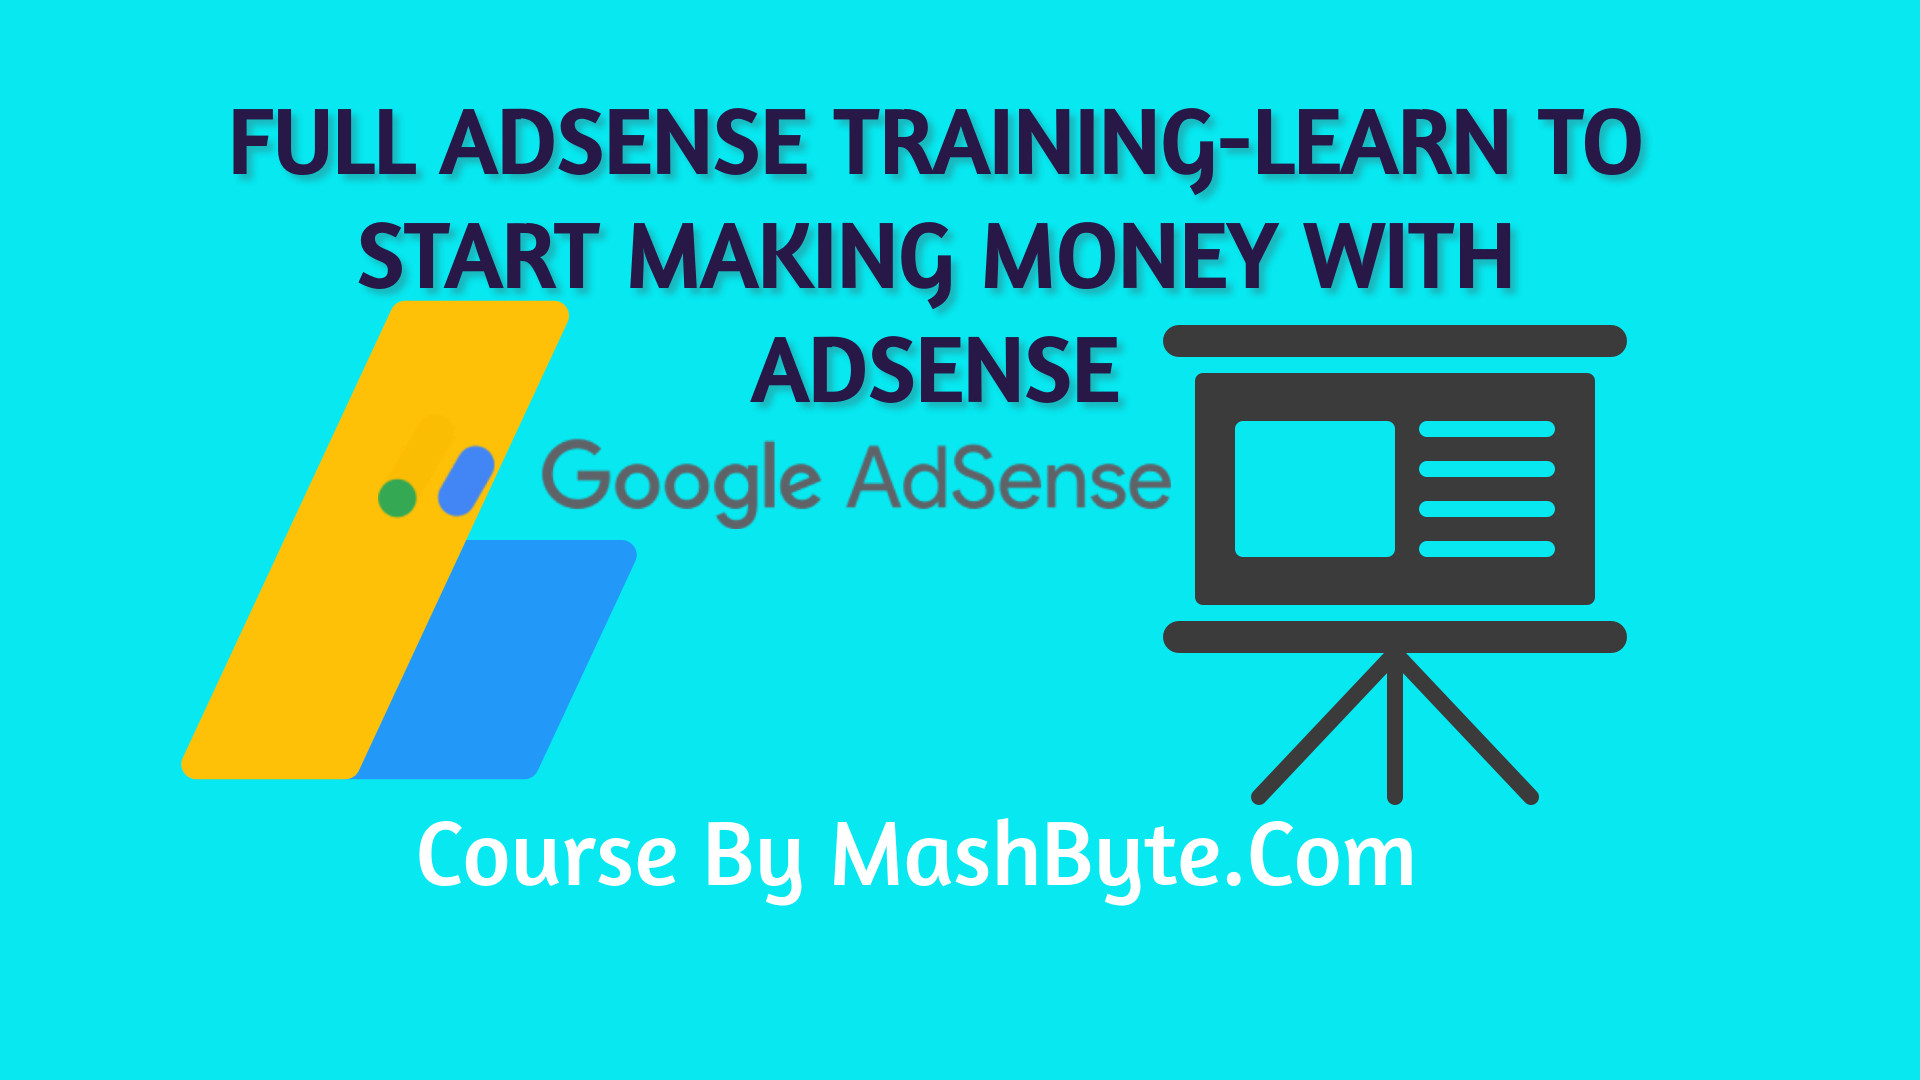 ,Keyword, ,google adsense course udemy, ,alison google analytics, ,social media marketing course alison, ,adsense vs adwords, ,free google courses, ,google adsense youtube, ,google certifications list, ,skippshop, ,google partners, ,facebook ads certification, ,google adwords certification, ,youtube certification, ,udemy adsense masterclass 2018, ,google adsense method, ,free adsense certification, ,traffic arbitrage course, ,google adsense mastery guide pdf, ,arbitrage courses, ,adsense support email, ,google adsense sign in, ,google analytics course, ,adsense self click trick 2020, ,adsense arbitrage 2020, ,google digital marketing course, ,google courses, ,online advertising training, ,online courses ads, ,online classes advertisement sample, ,Keyword, ,google adsense course udemy, ,google certification courses, ,google adsense certification program, ,google academy, ,google adsense academy, ,google adwords course, ,google adsense tutorial, ,google digital garage,